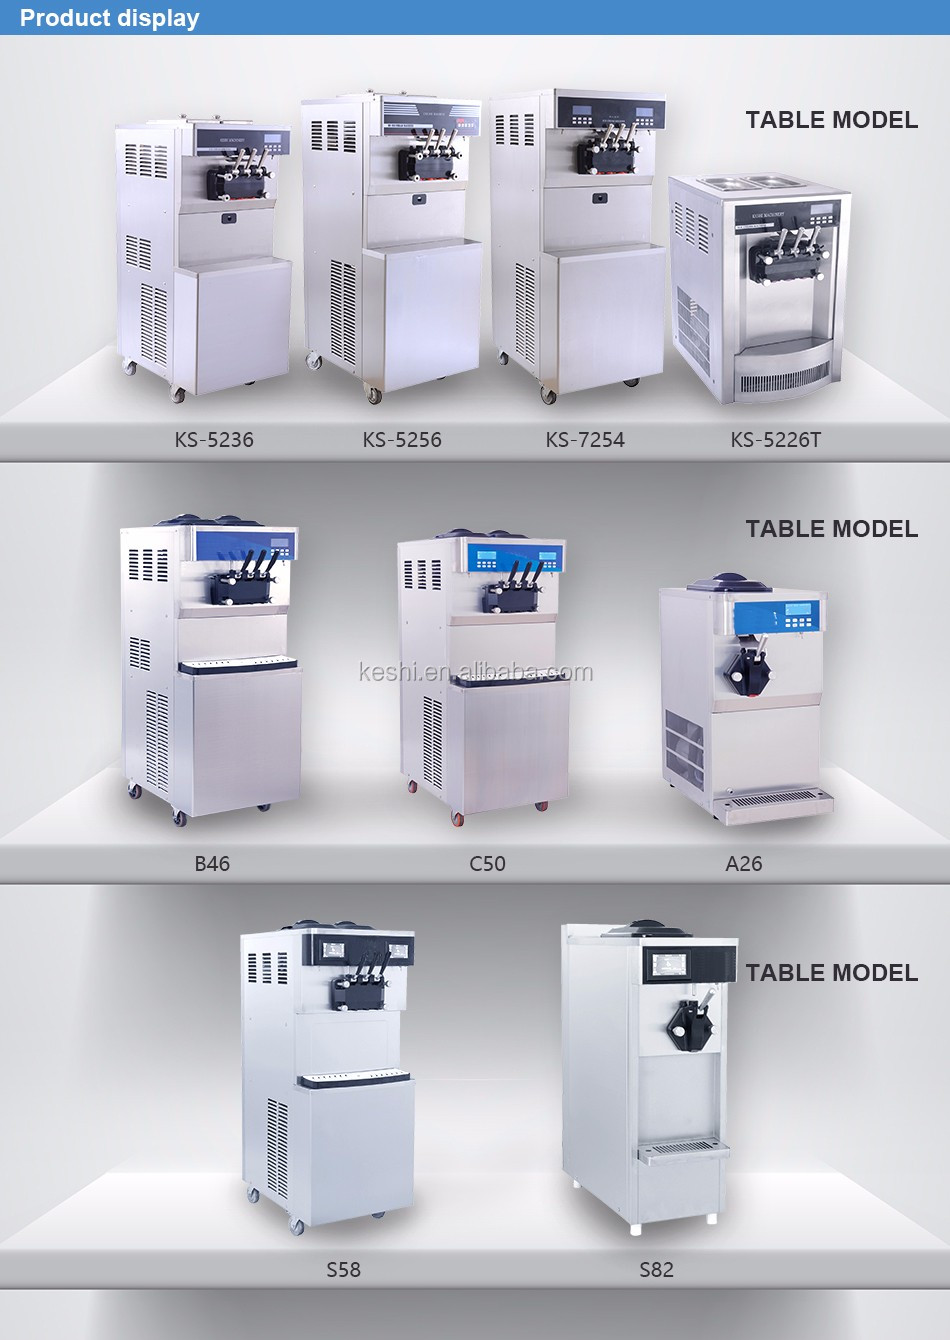 economic colorful series ice cream supply 3 flavours stainless steel ice cream making machine